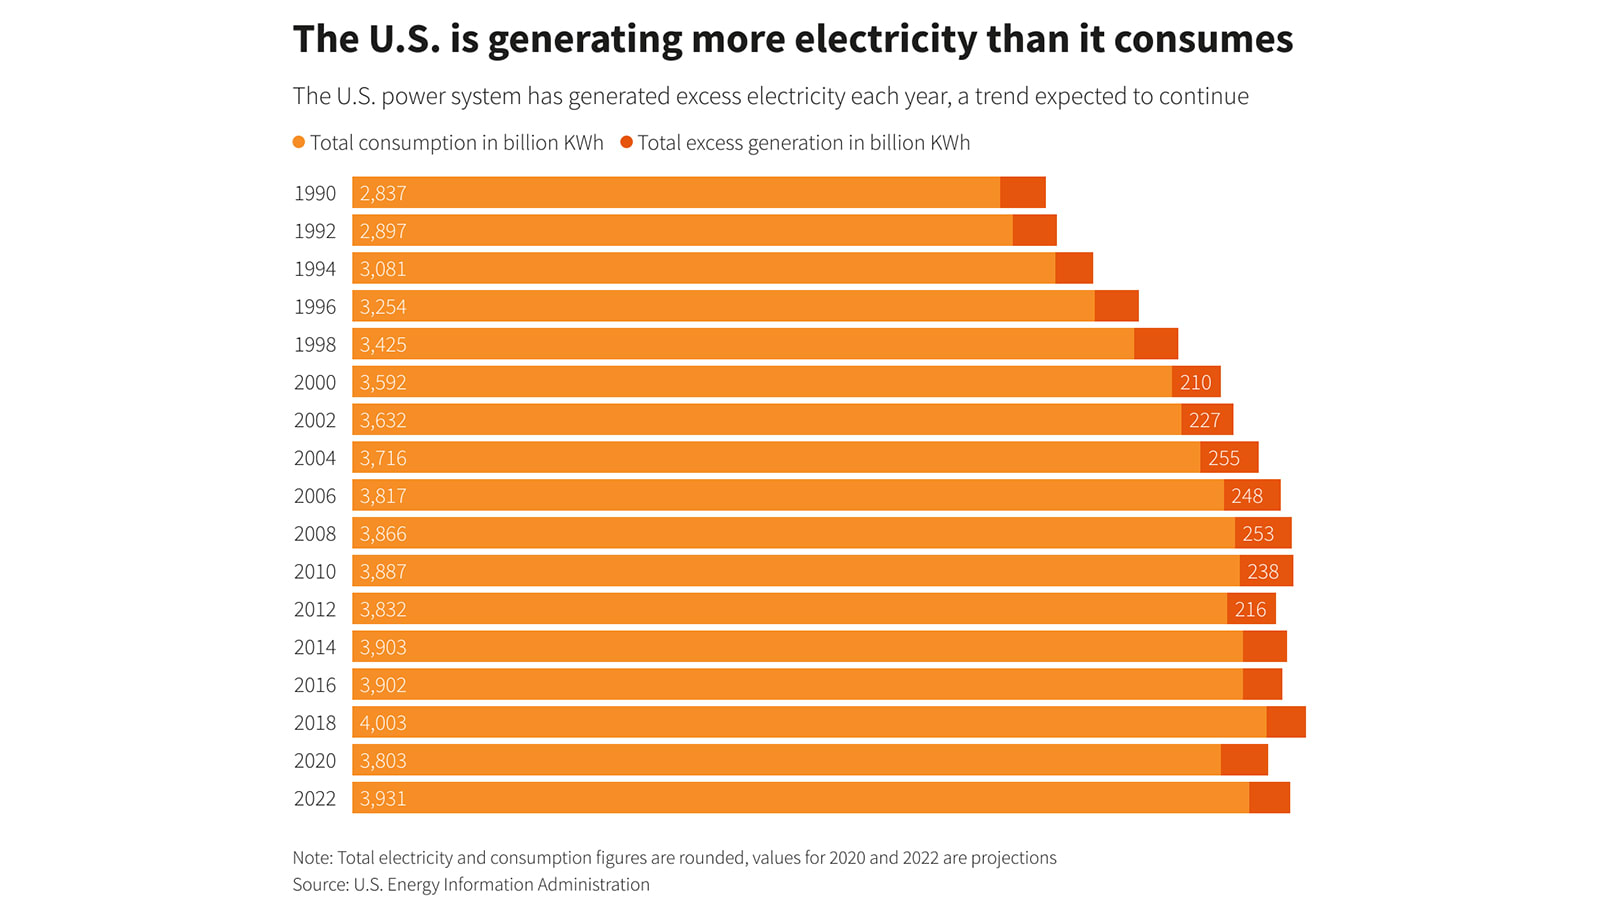 The U.S. is generating more electricity than it consumes